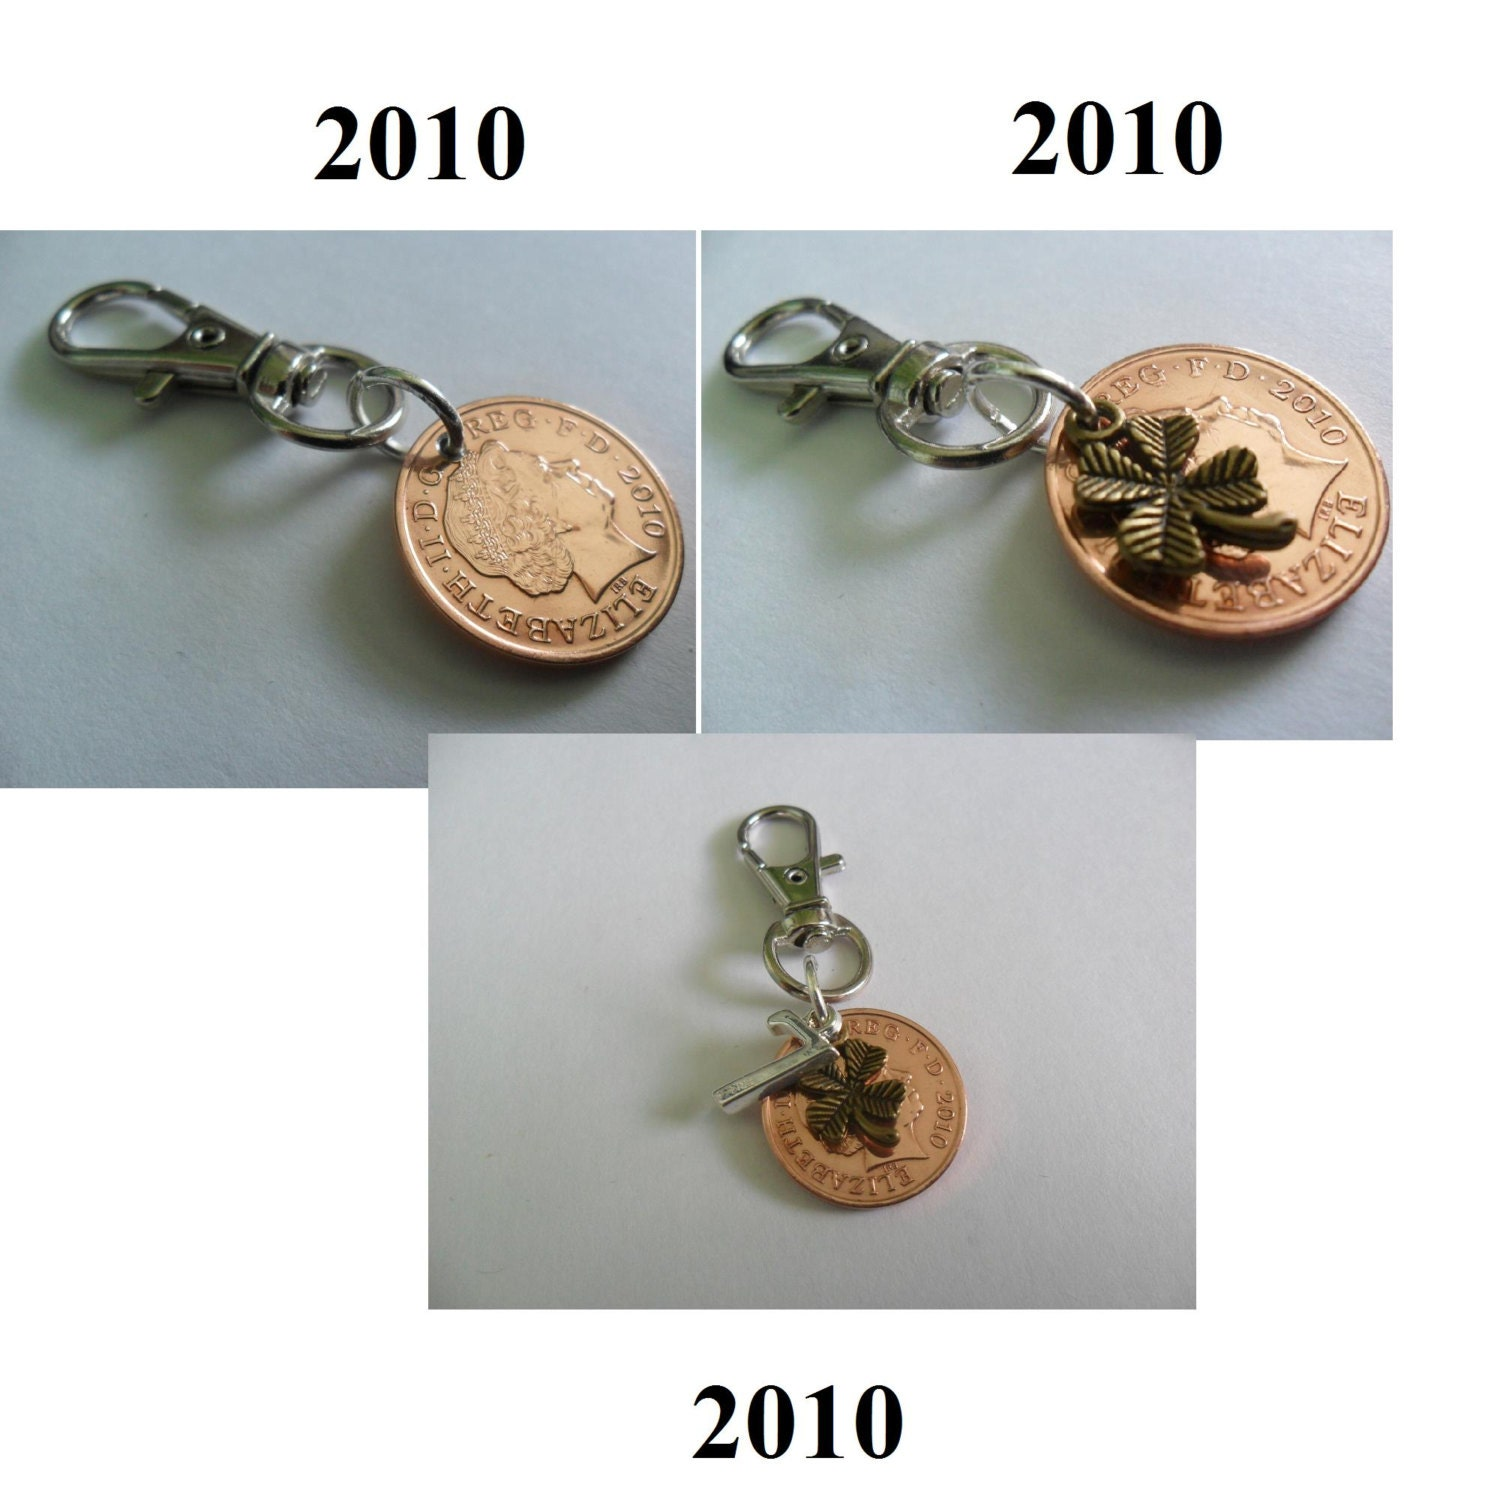 7th Wedding Anniversary Gift For Her: 7th Wedding Anniversary Gift Copper Wedding Anniversary